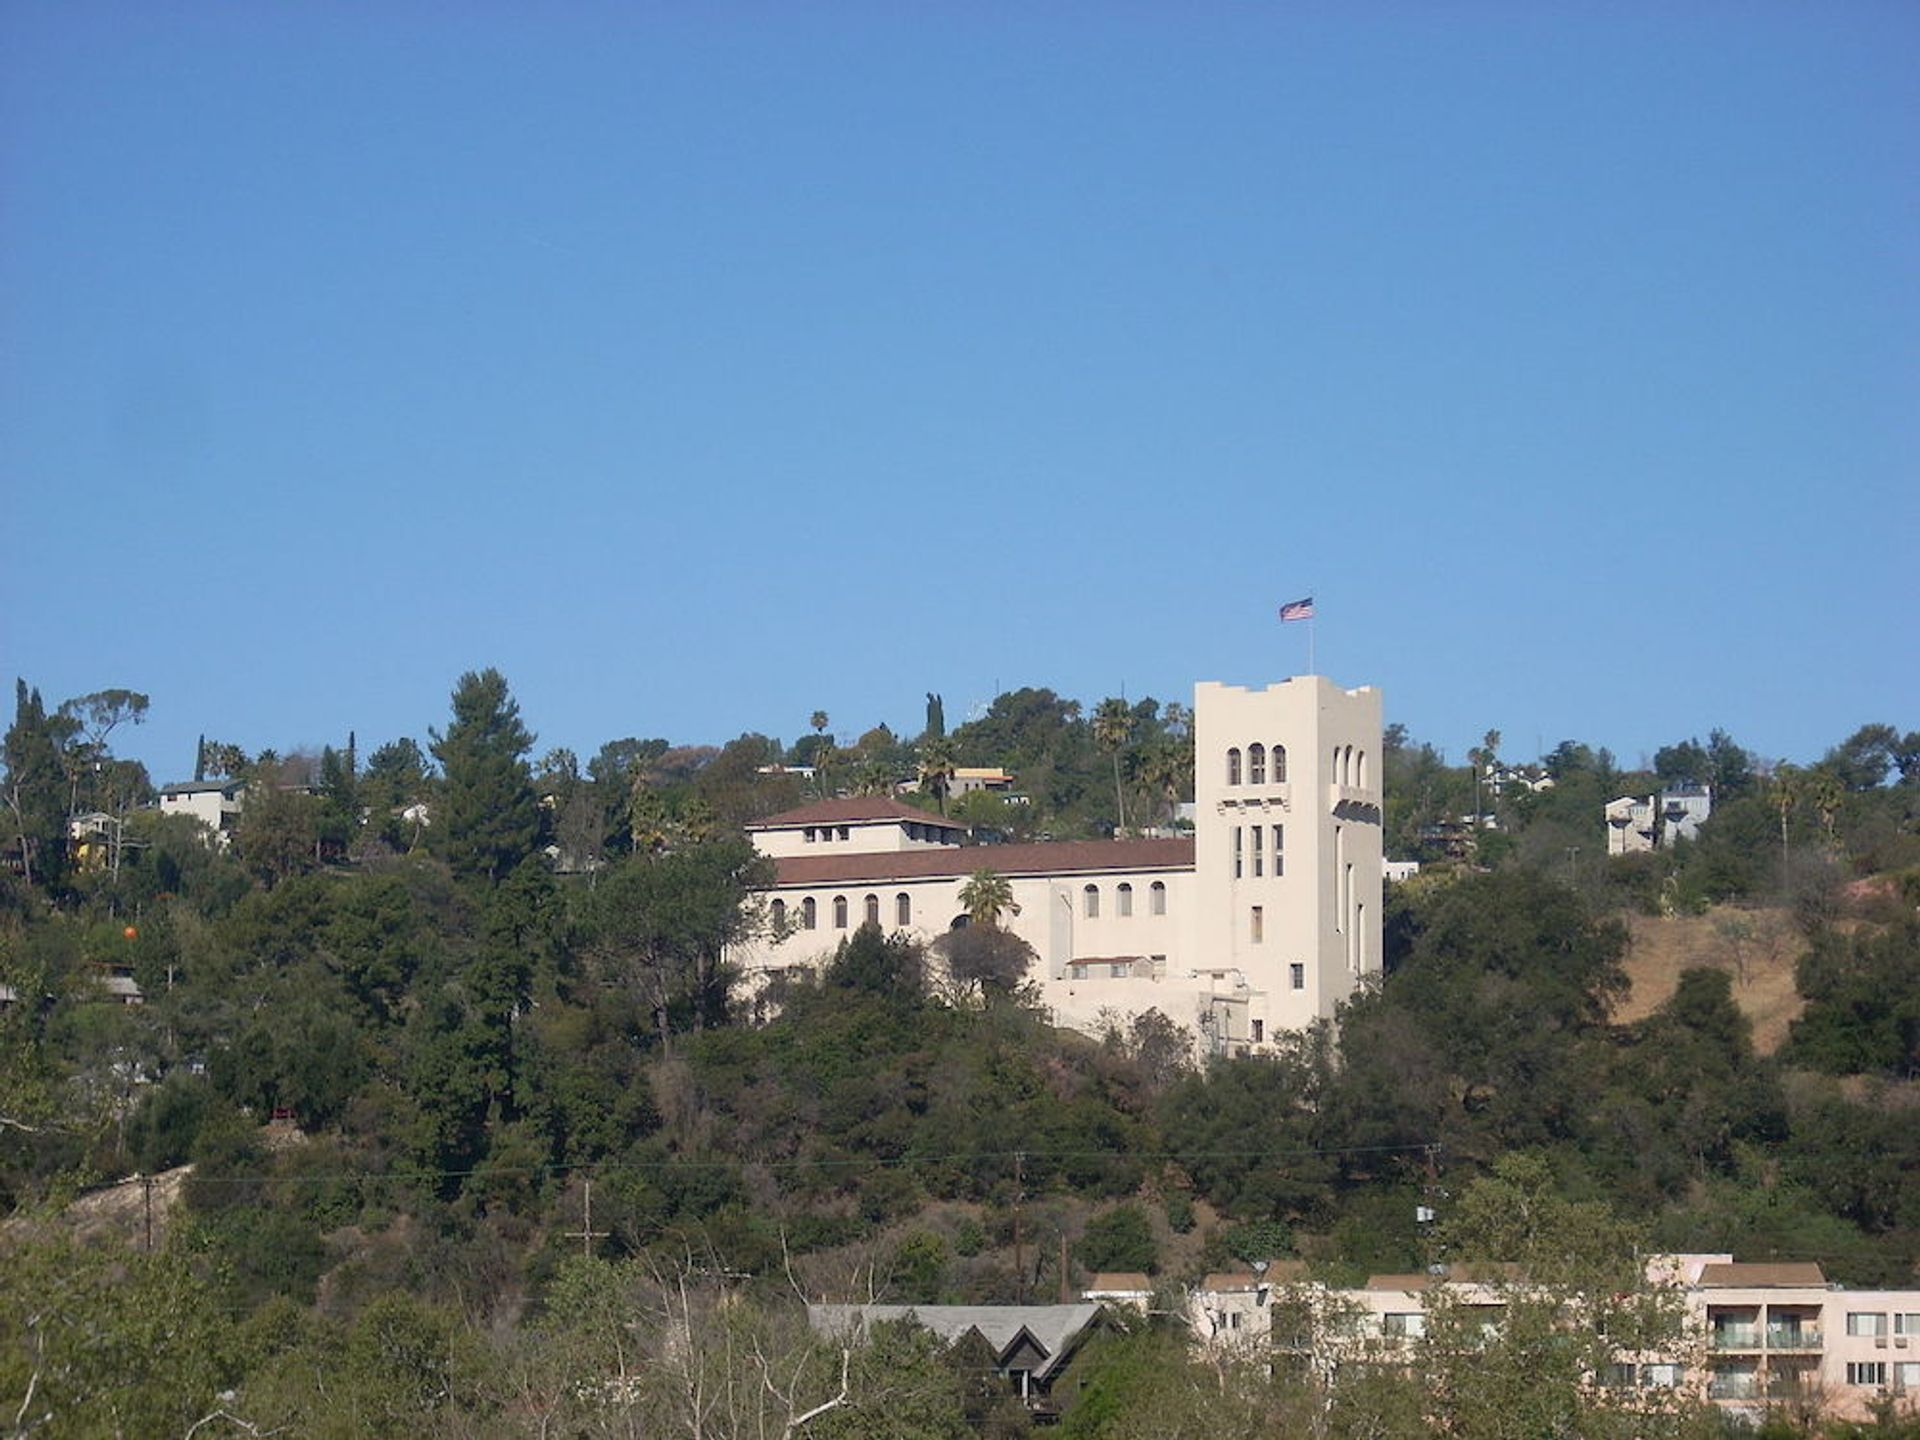 The Southwest Museum of the American Indian Wikimedia Commons